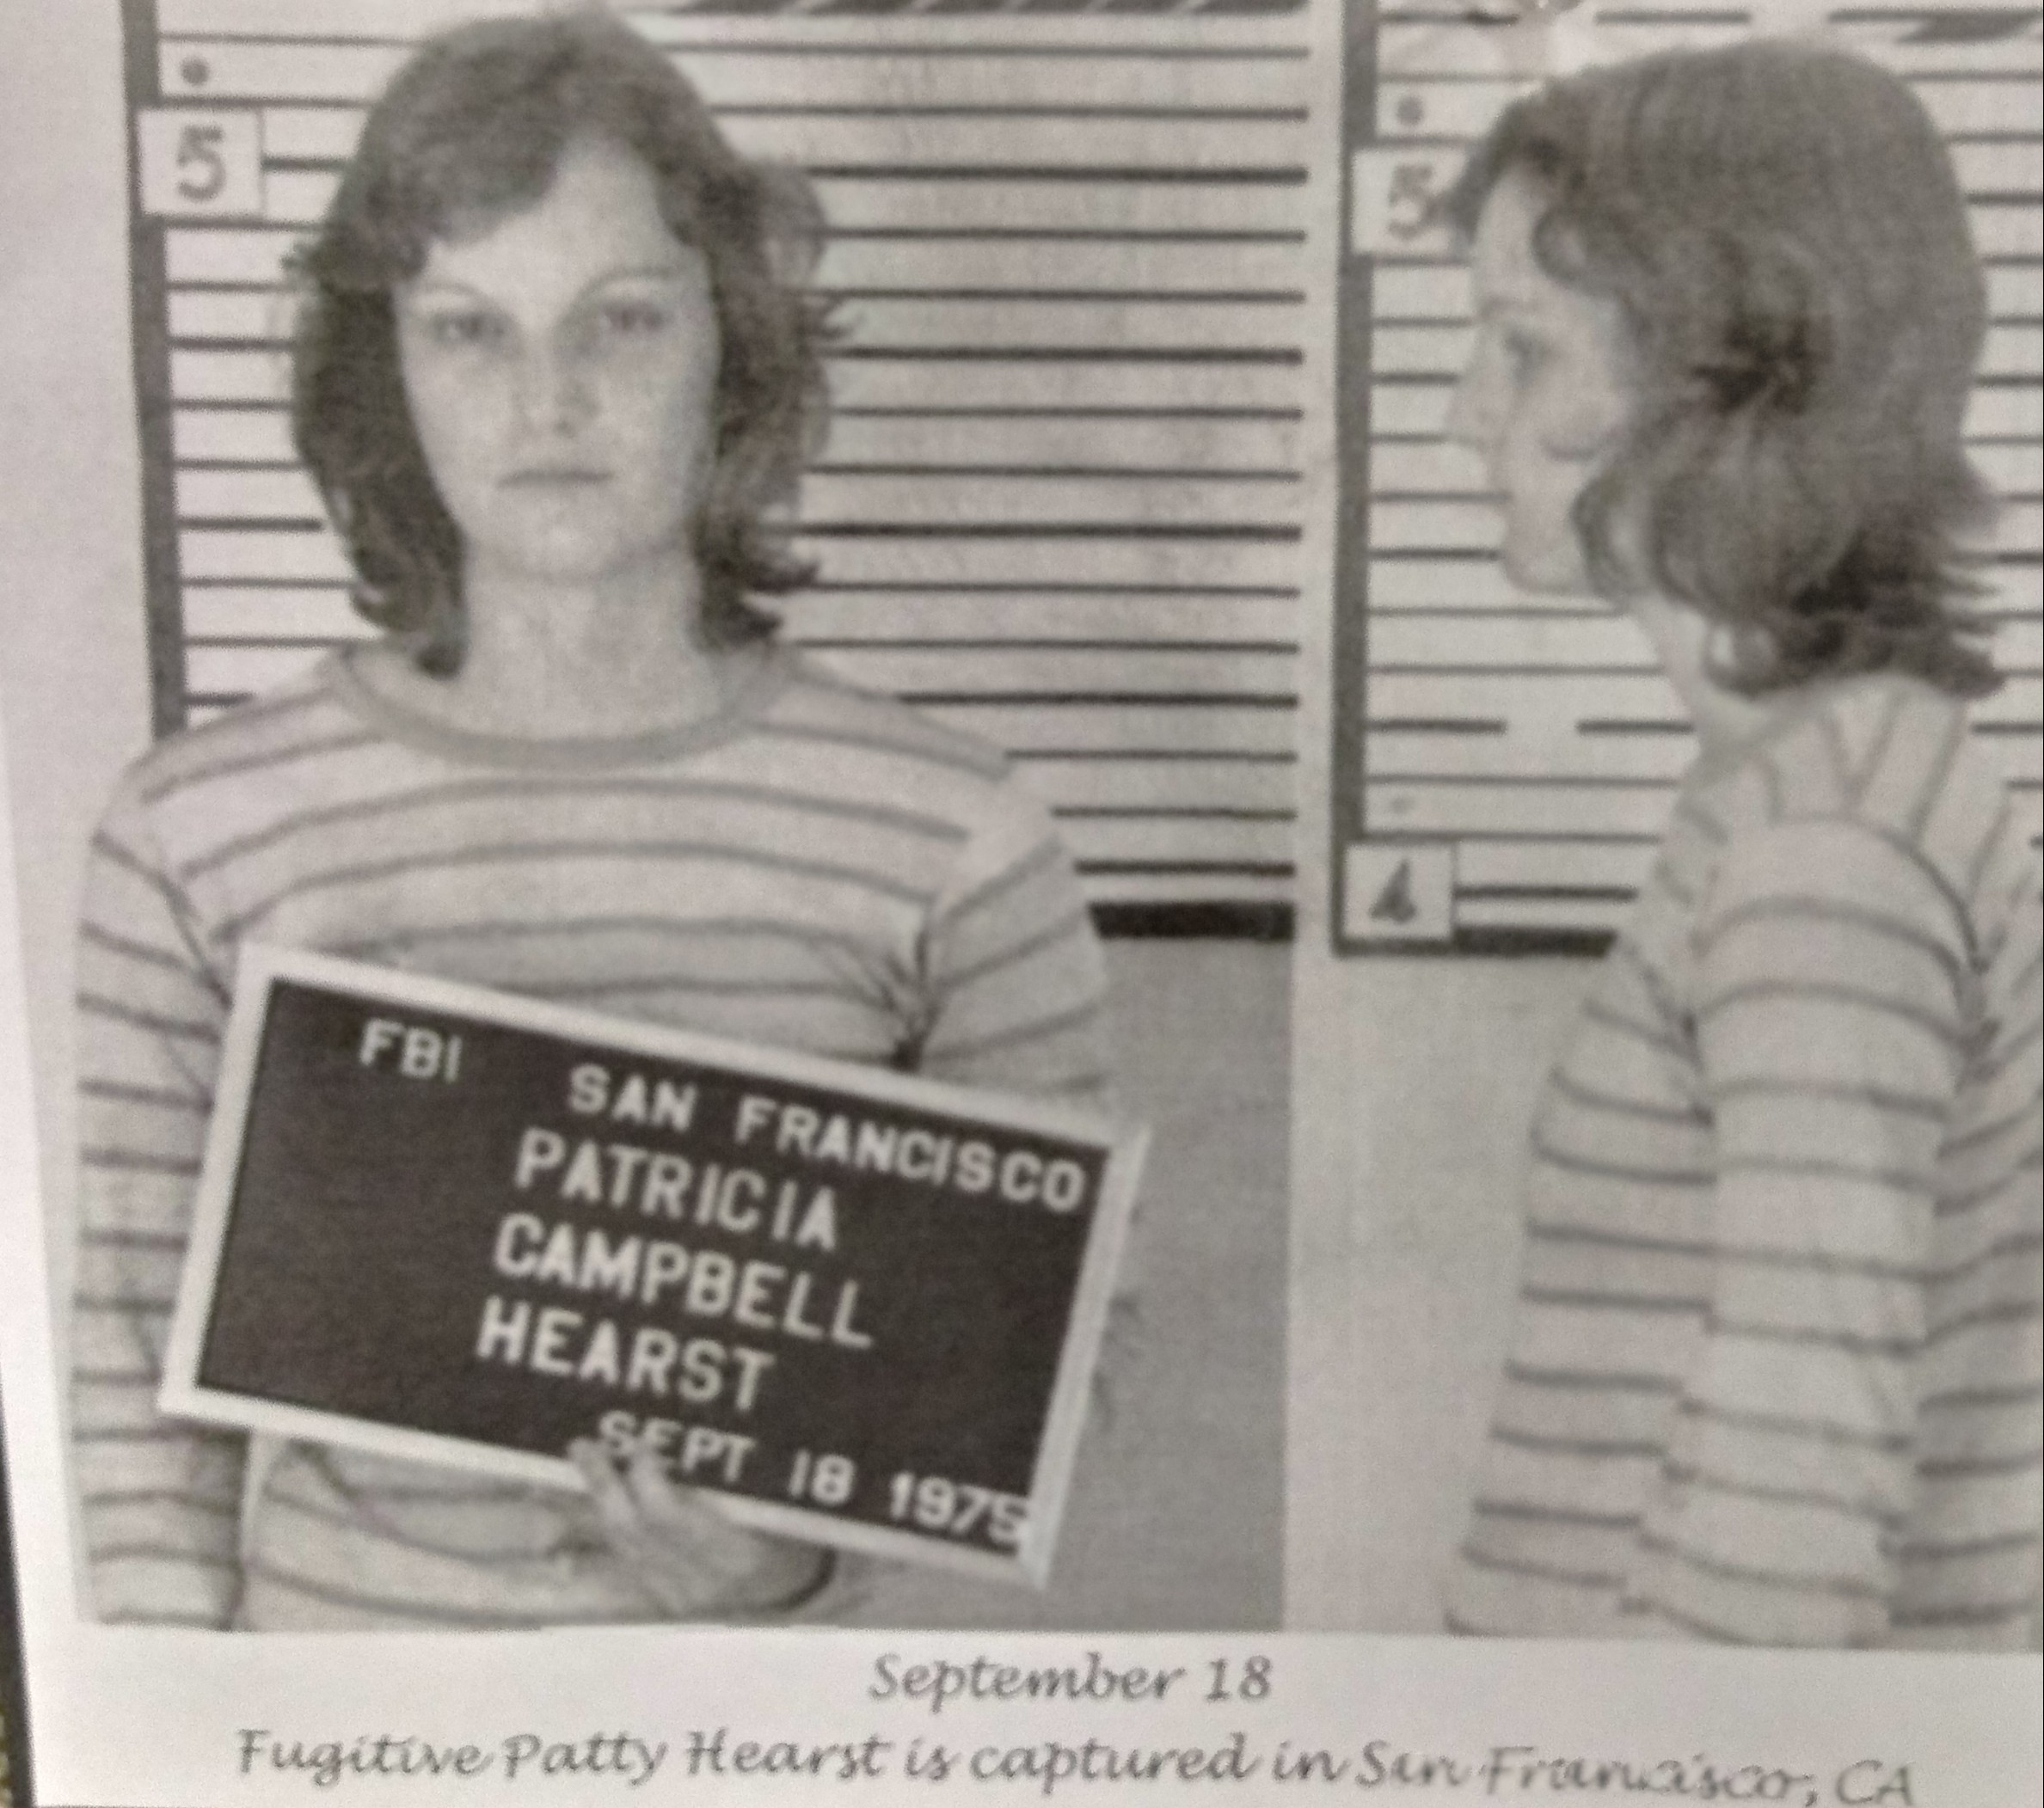 Police mugshots of Patty Hurst, facing front & in profile.